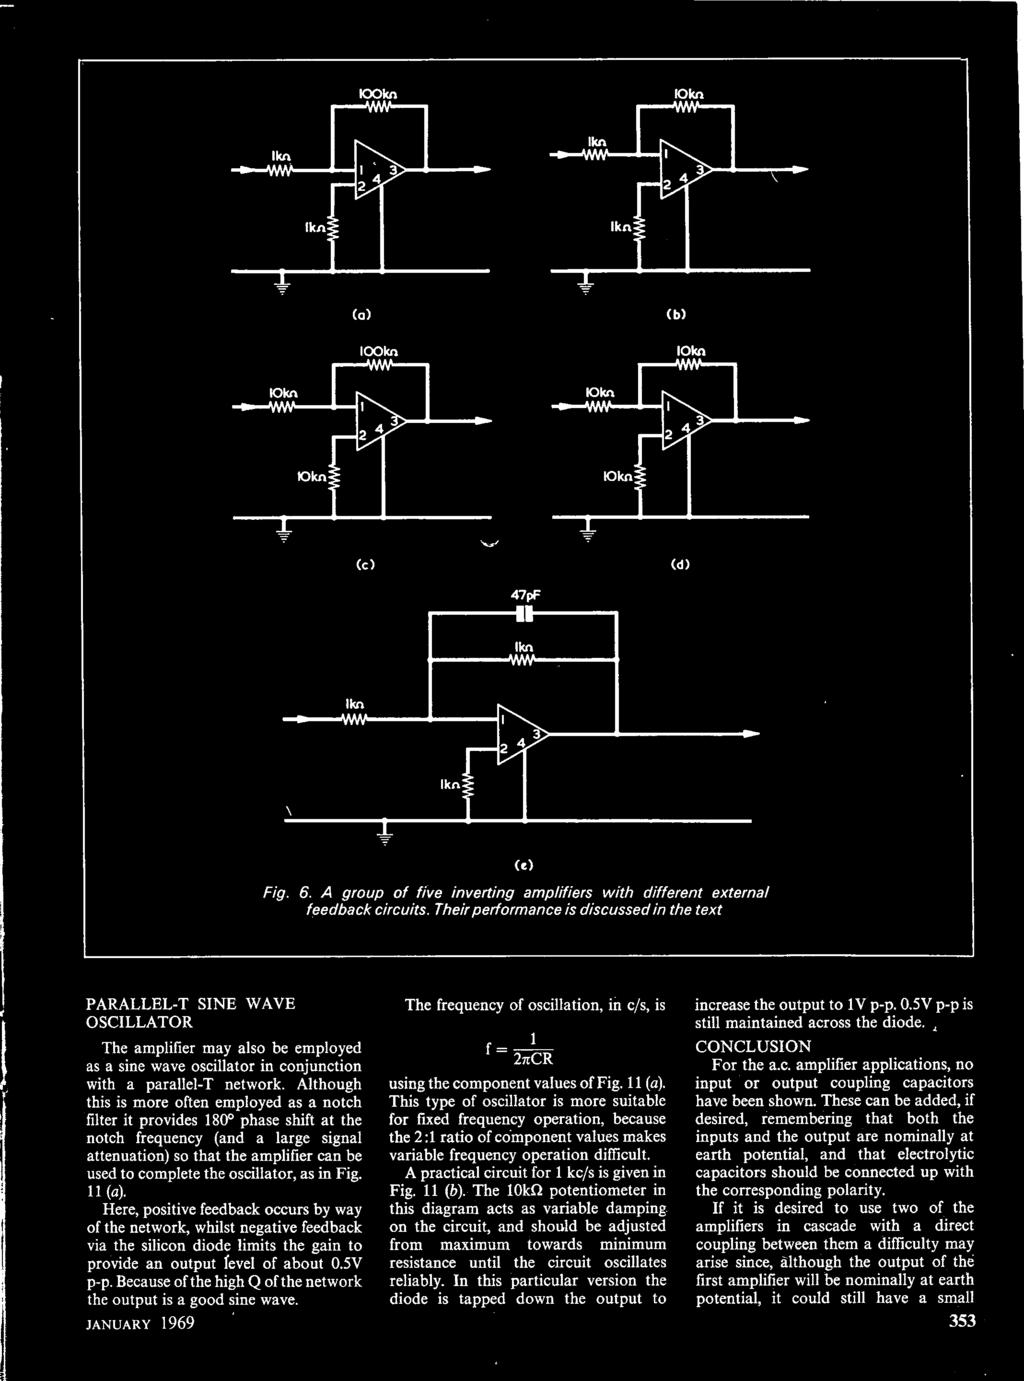 Vol22 No6 January A Data Publication Radio Television Secret Code Lock Circuit Amplifiercircuit Diagram Oscillator As In Fig Ll4 Here Positive Feedback Occurs By Way